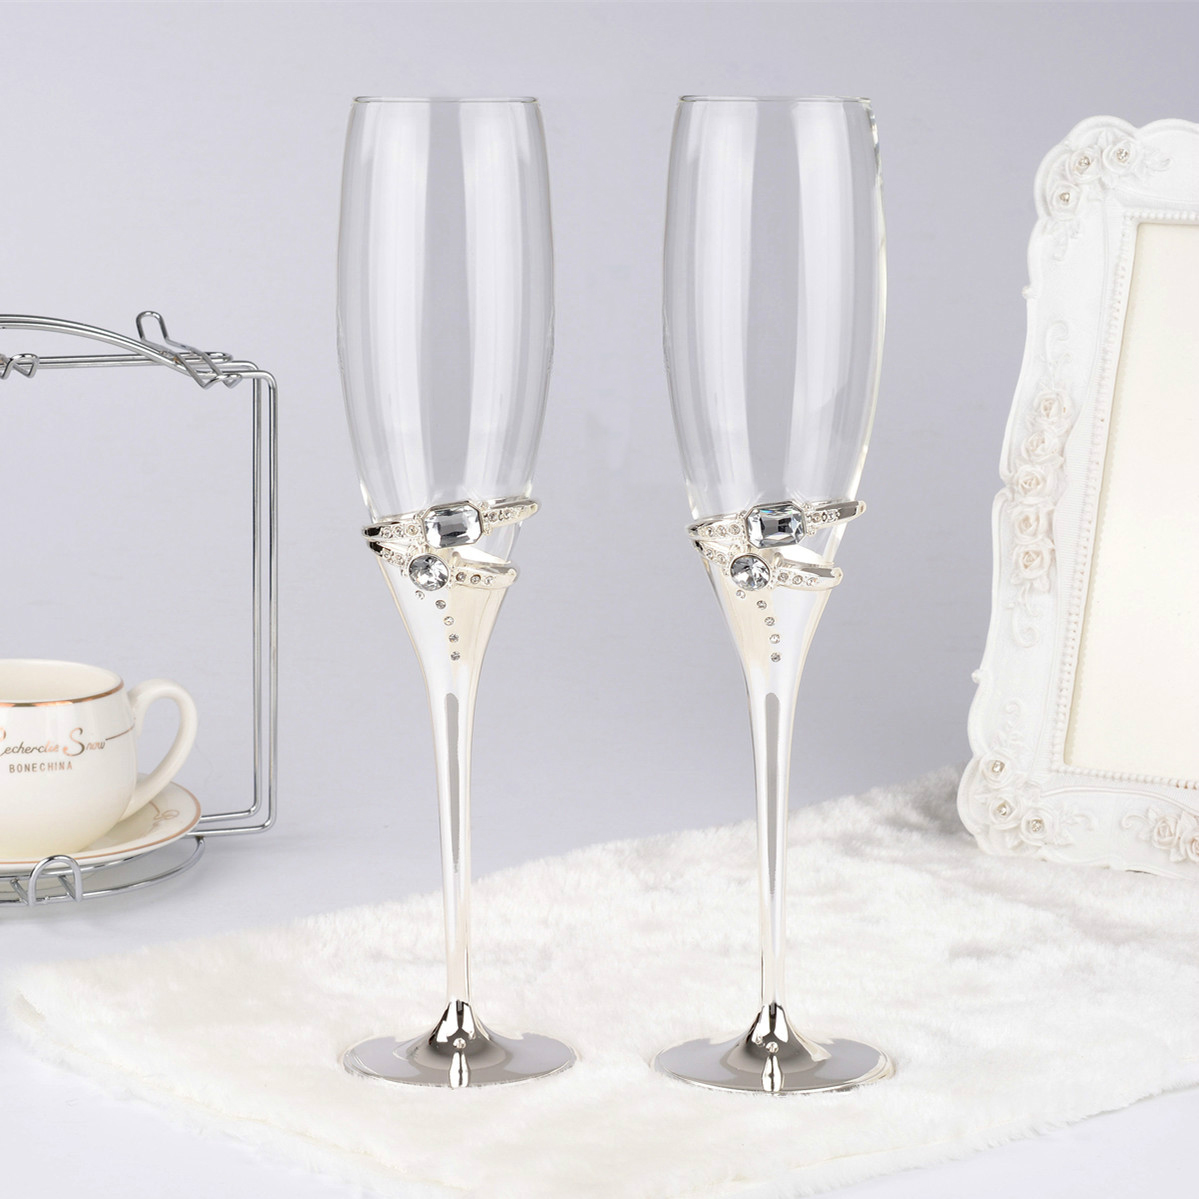 1 pair silver color wedding champagne red wine glasses for Wine glass decorations for weddings